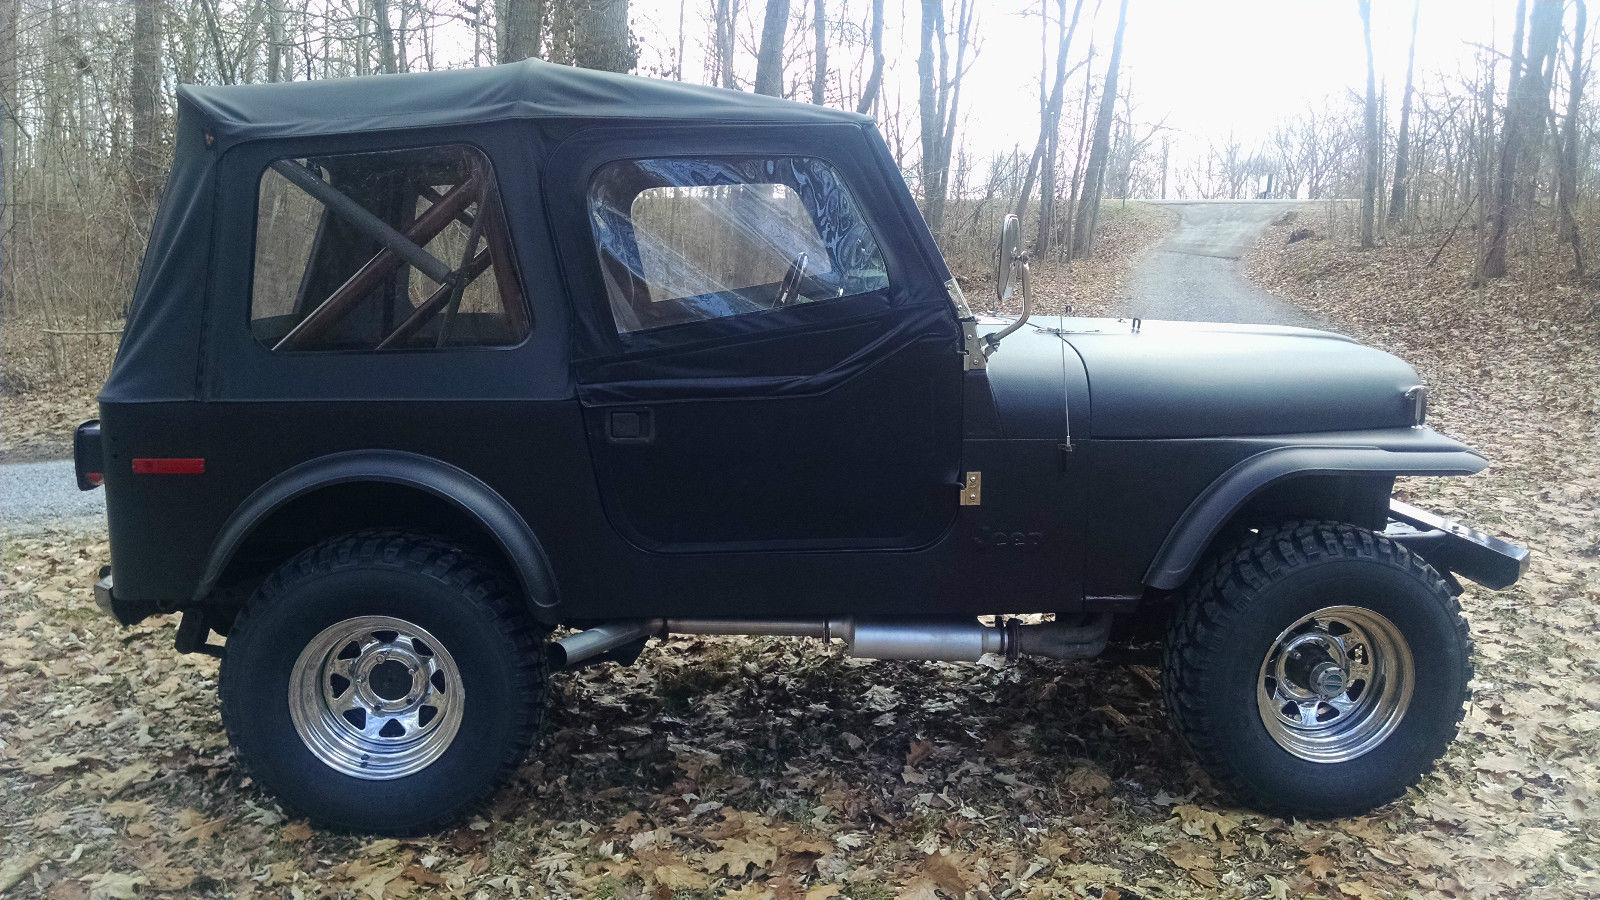 1979 jeep cj 7 360 v8 3 speed new tires new top and more nice daily driver. Black Bedroom Furniture Sets. Home Design Ideas